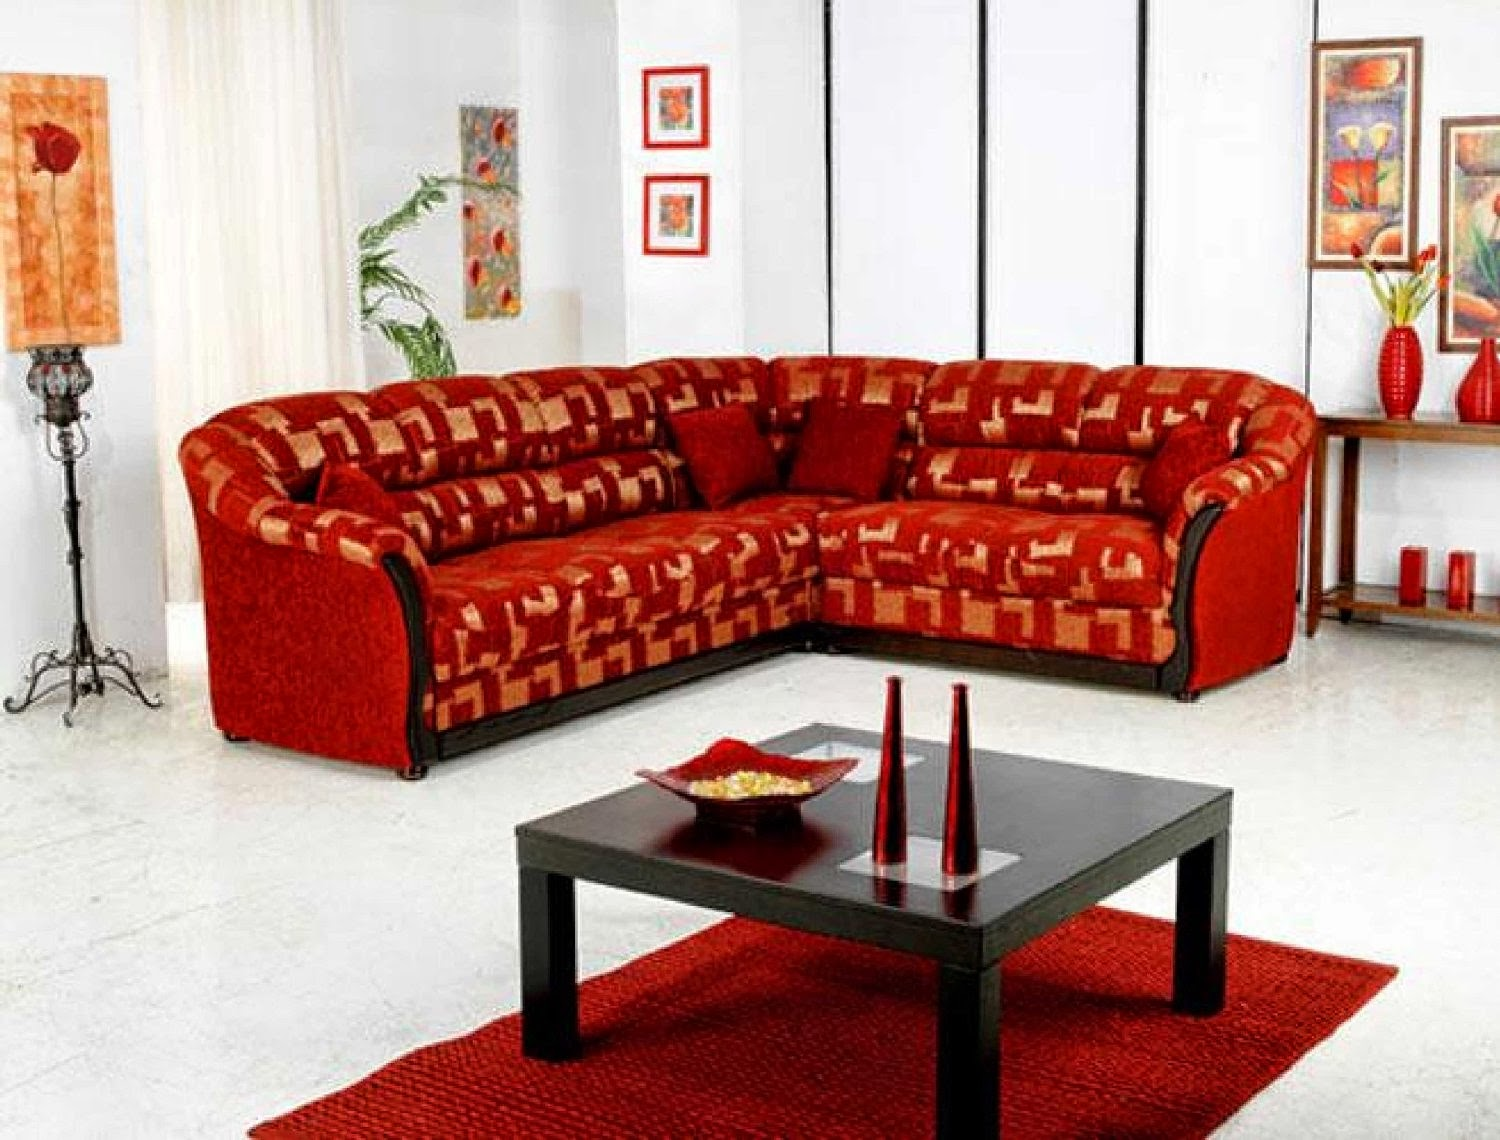 Red Sofa Sectional Recliner Single Singapore Couch